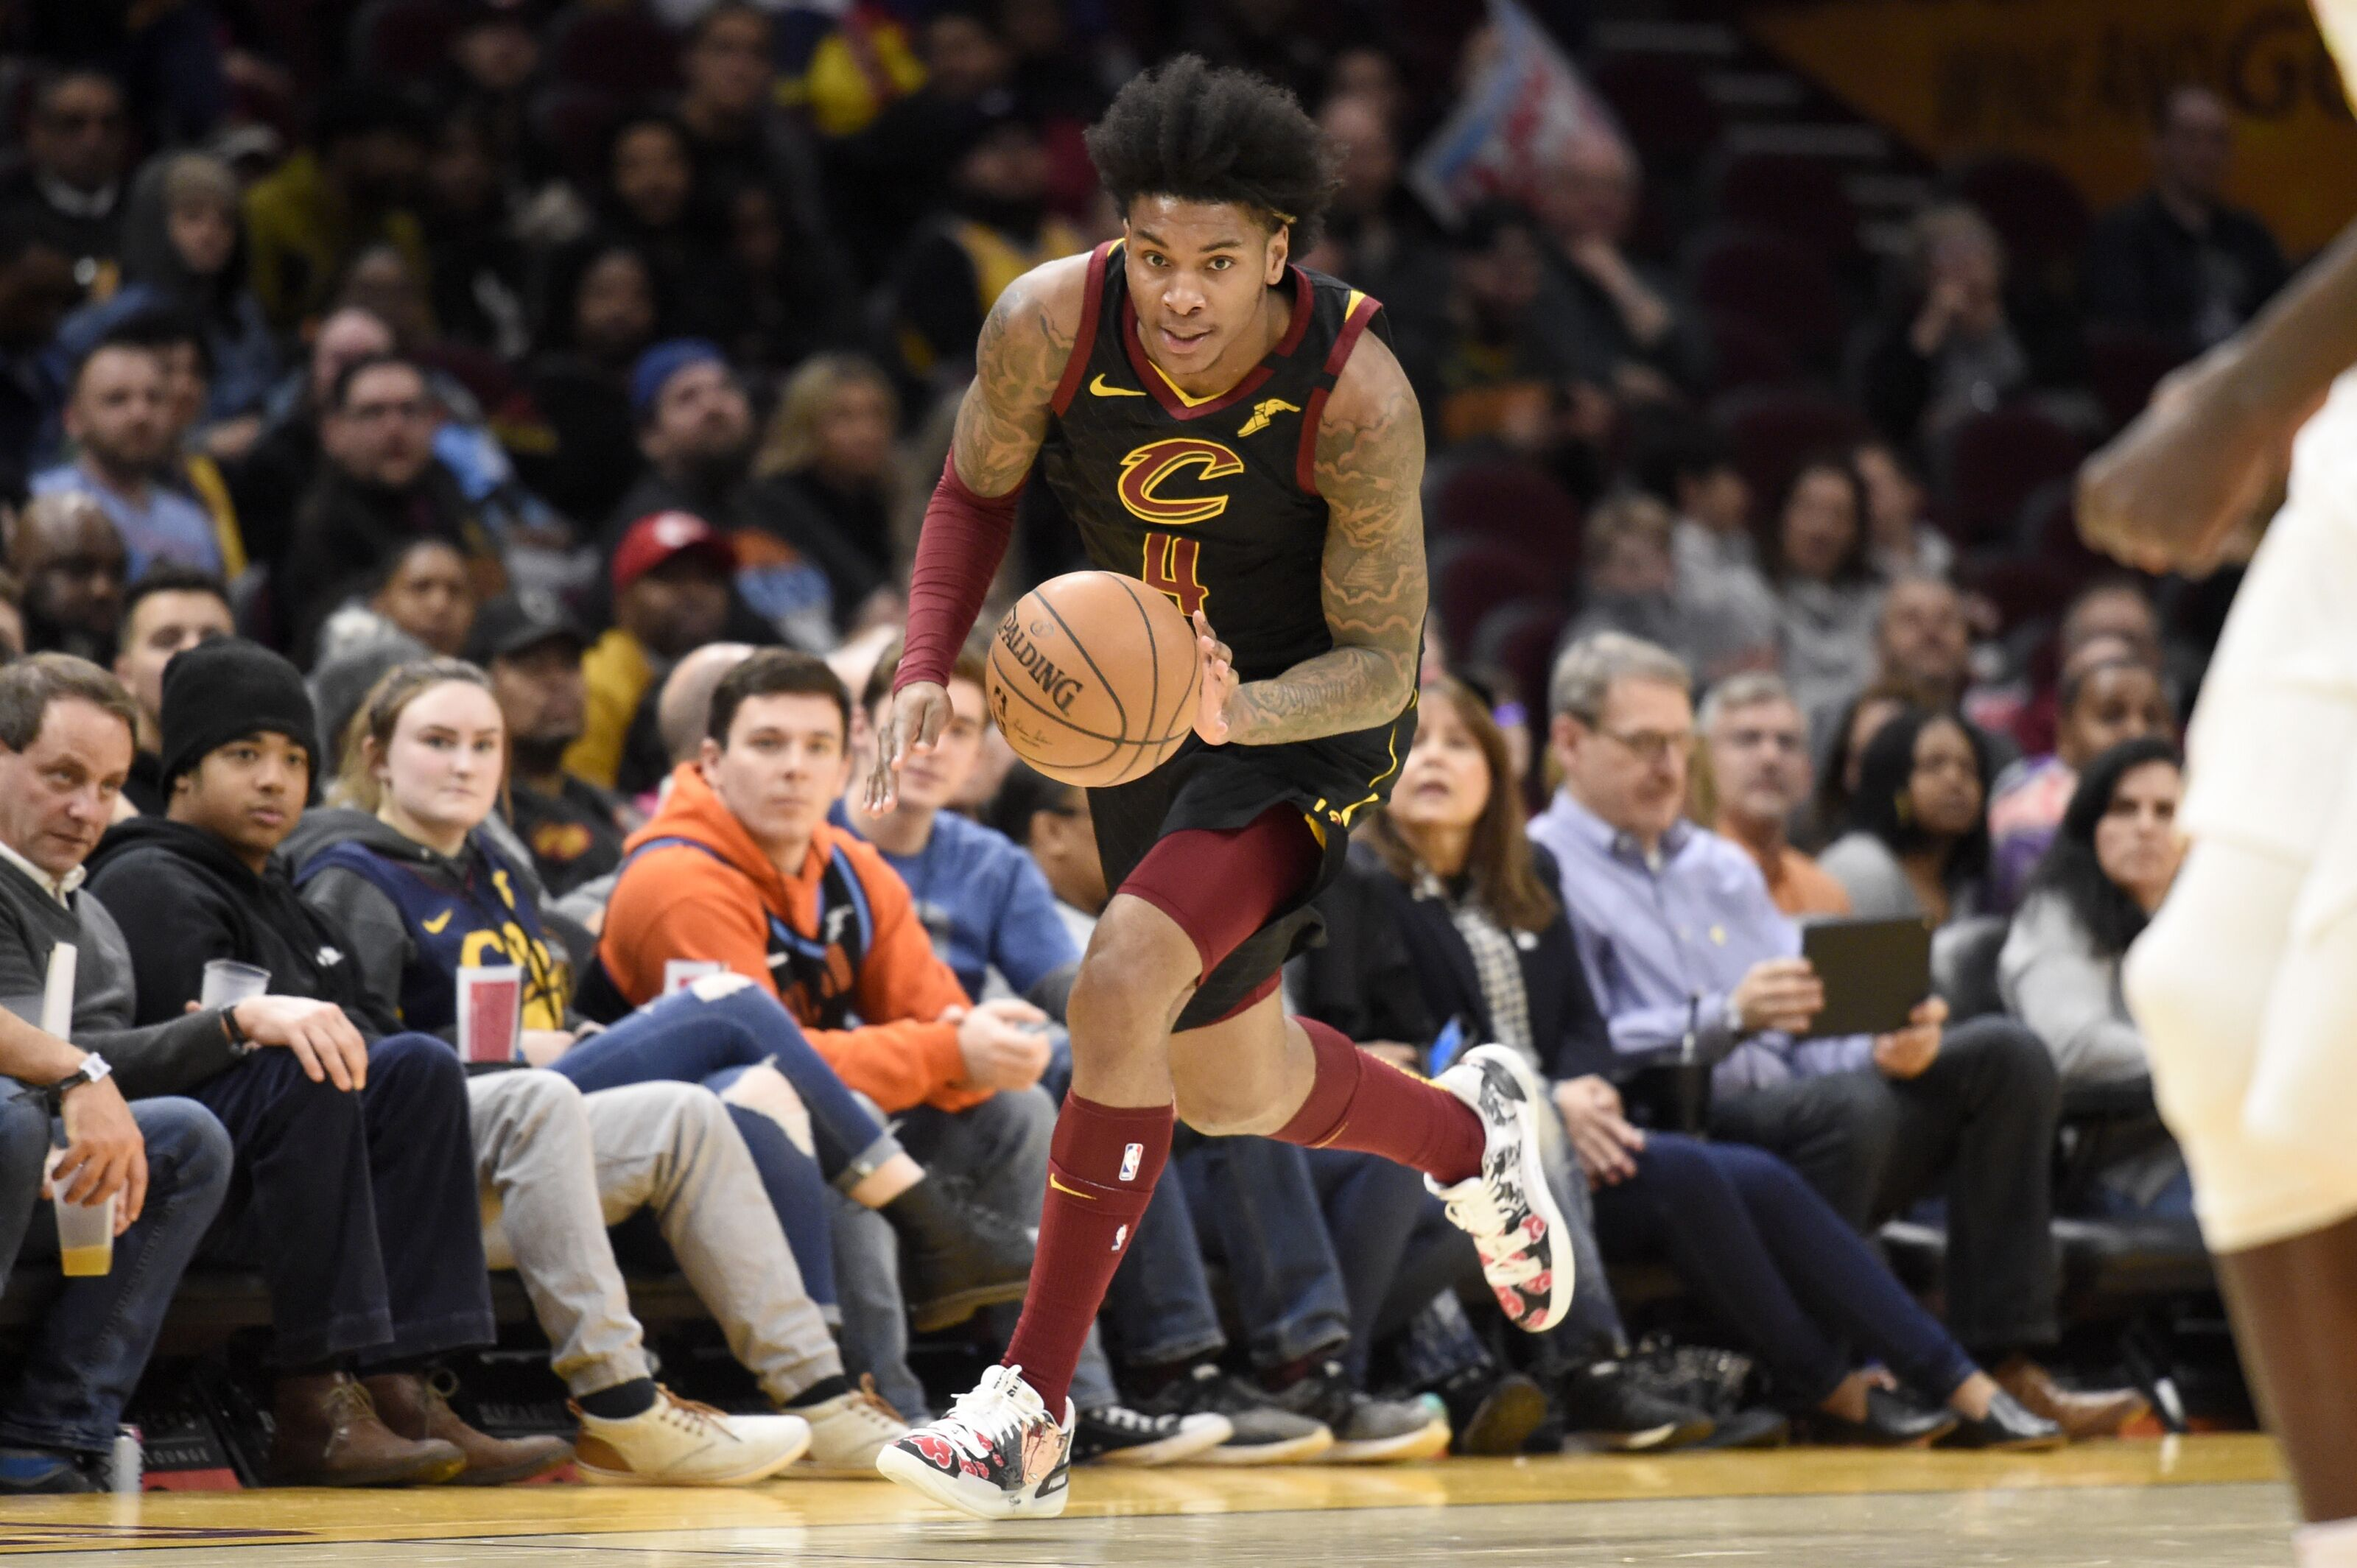 Cleveland Cavaliers: Who will be Cavs' best post All-Star break player?